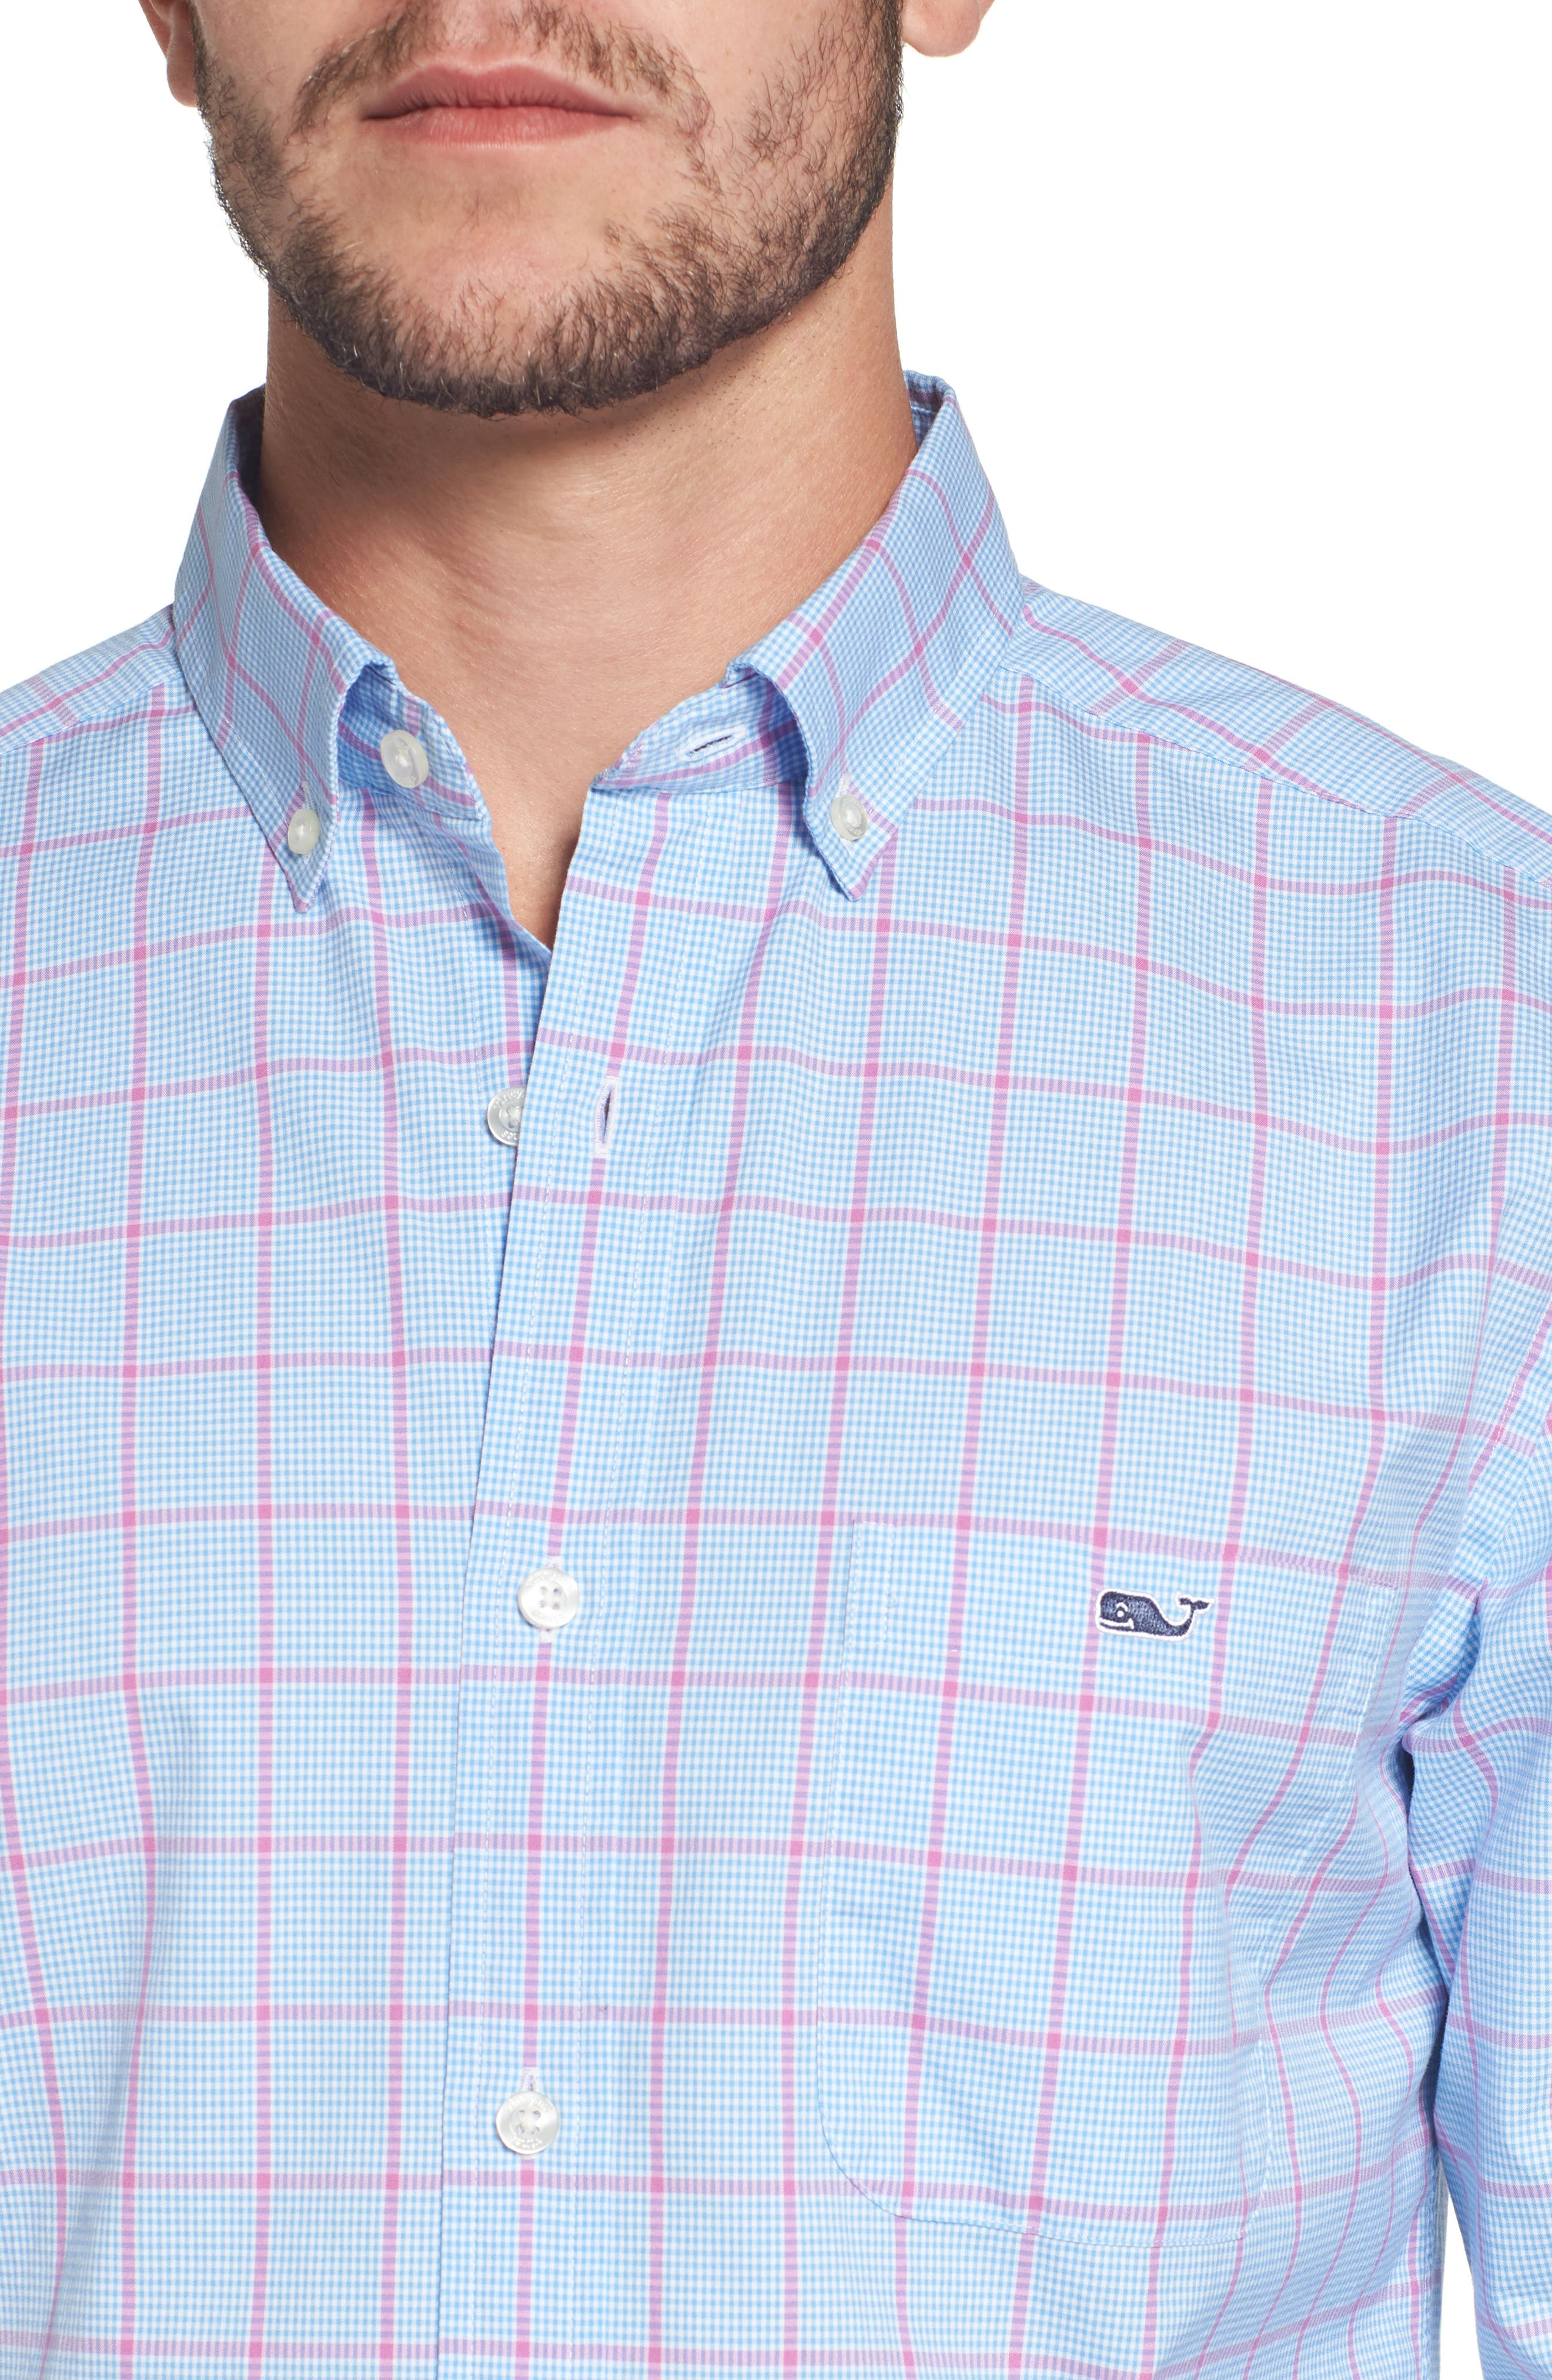 Murray Slim Fit Inlet Check Sport Shirt,                             Alternate thumbnail 4, color,                             438